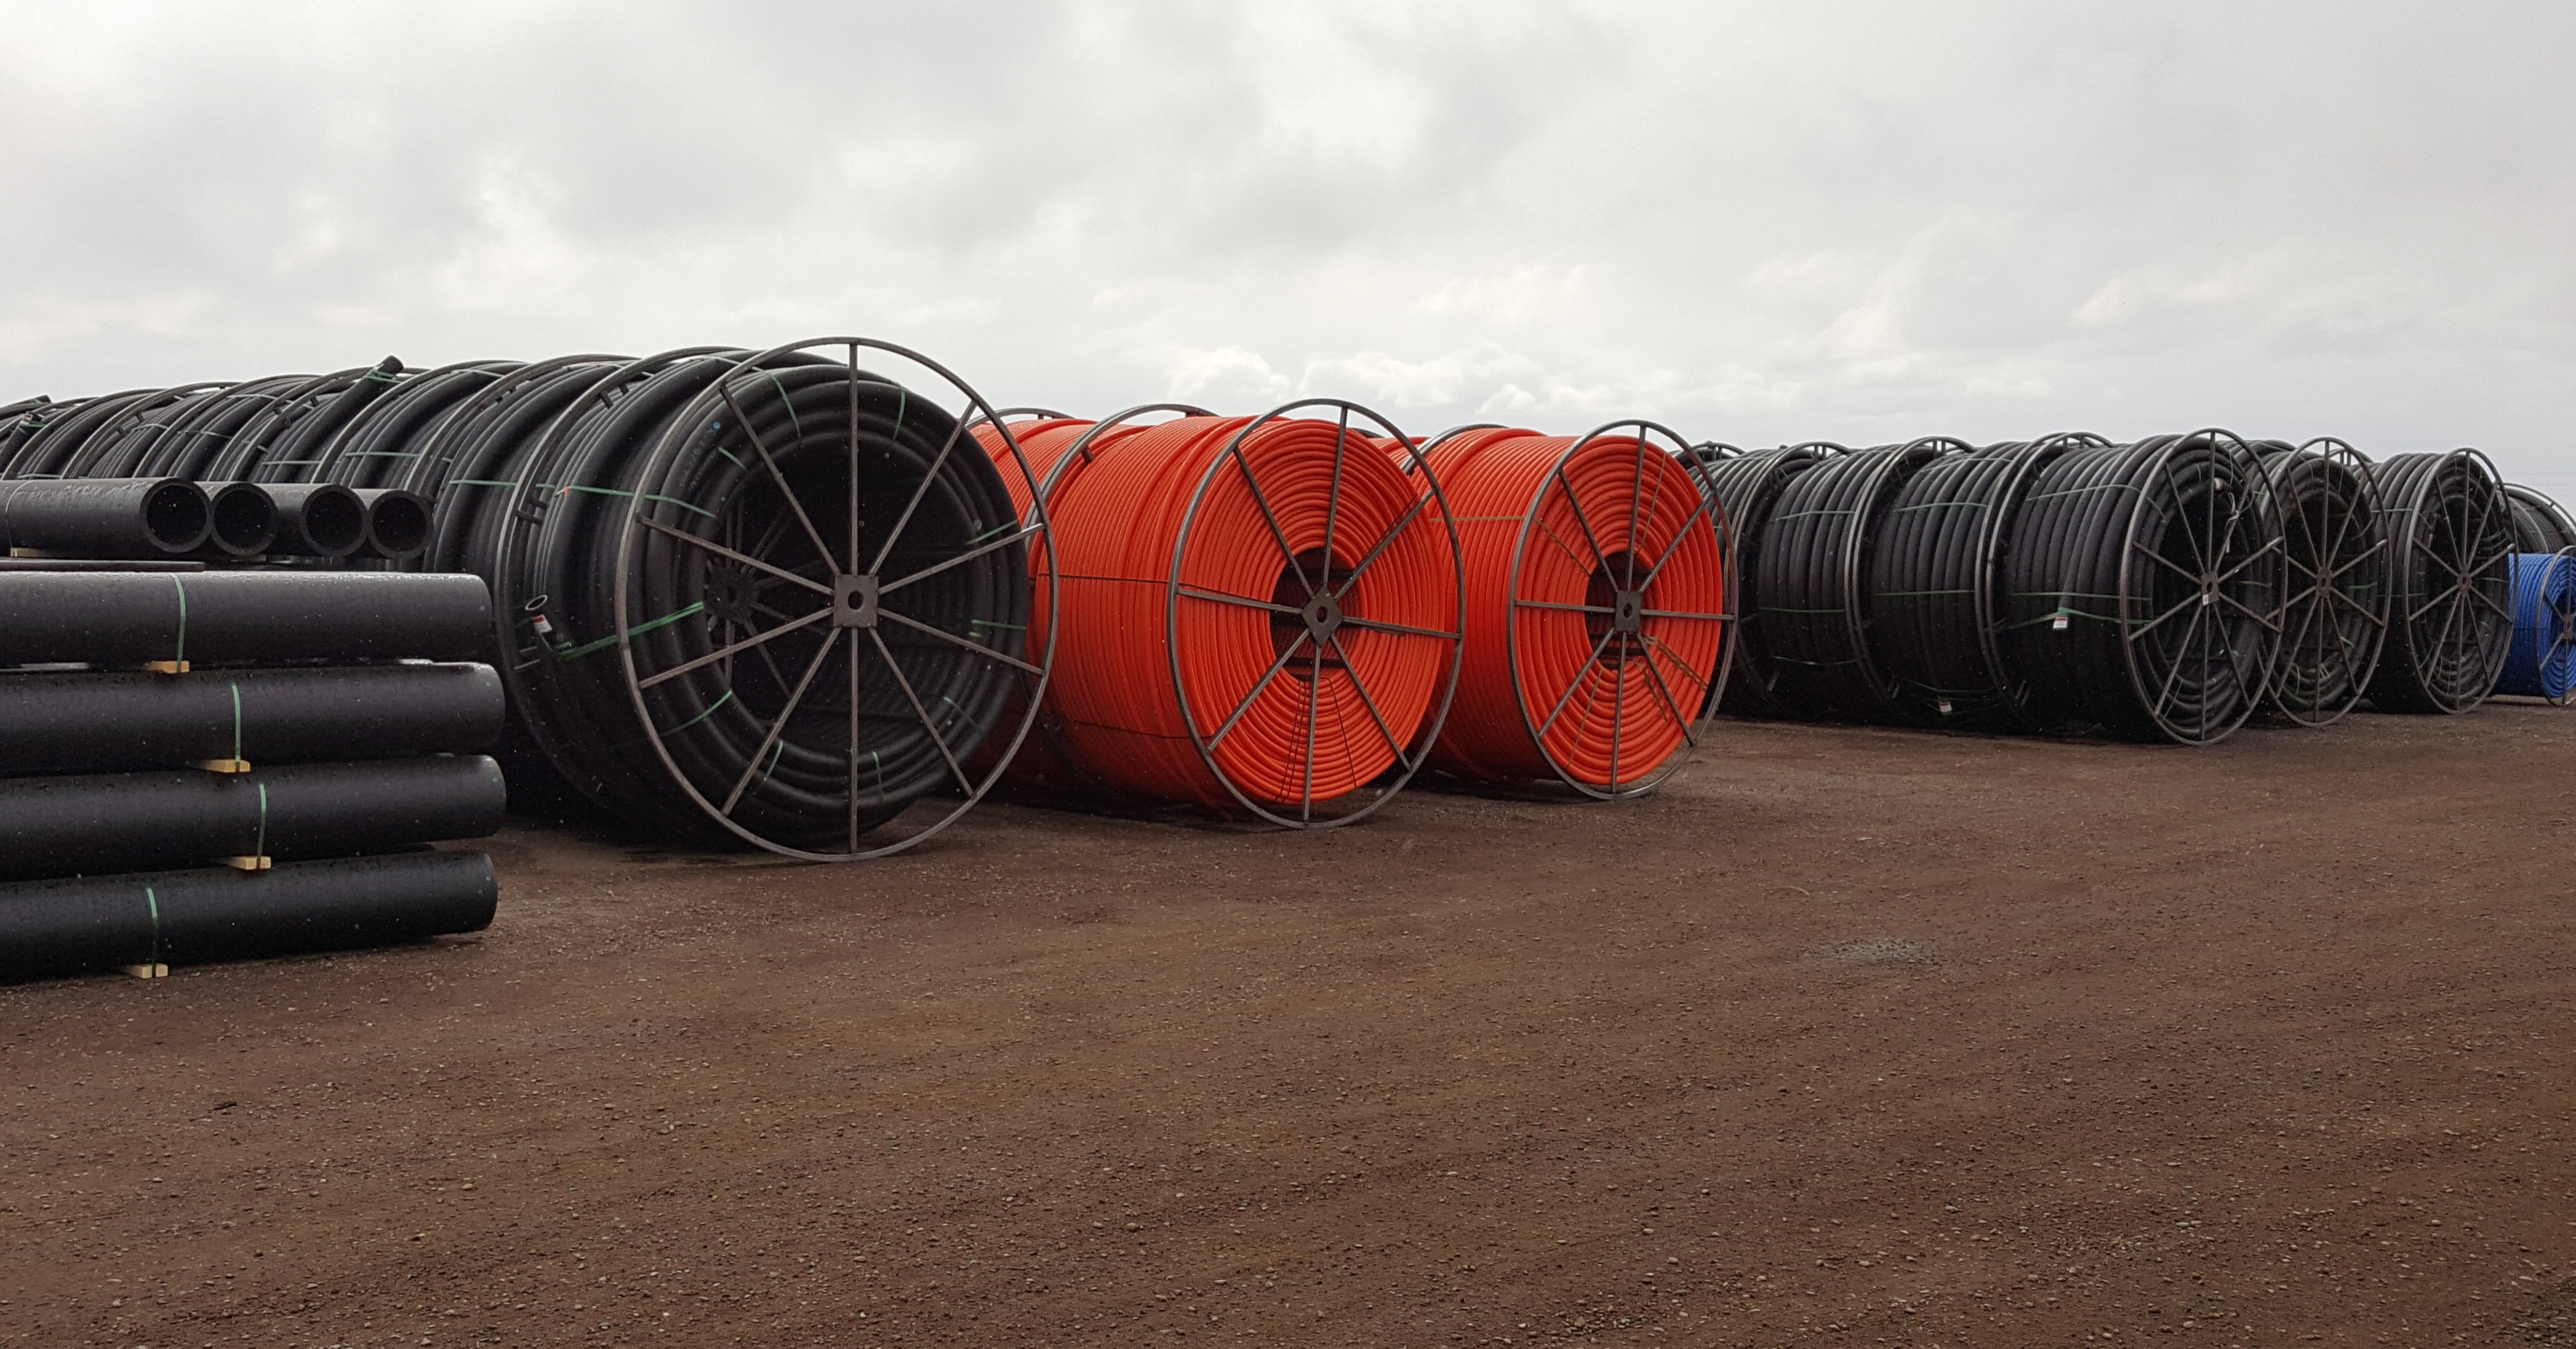 Industry certifications allow HDPE pipe manufacturers to compete in new markets